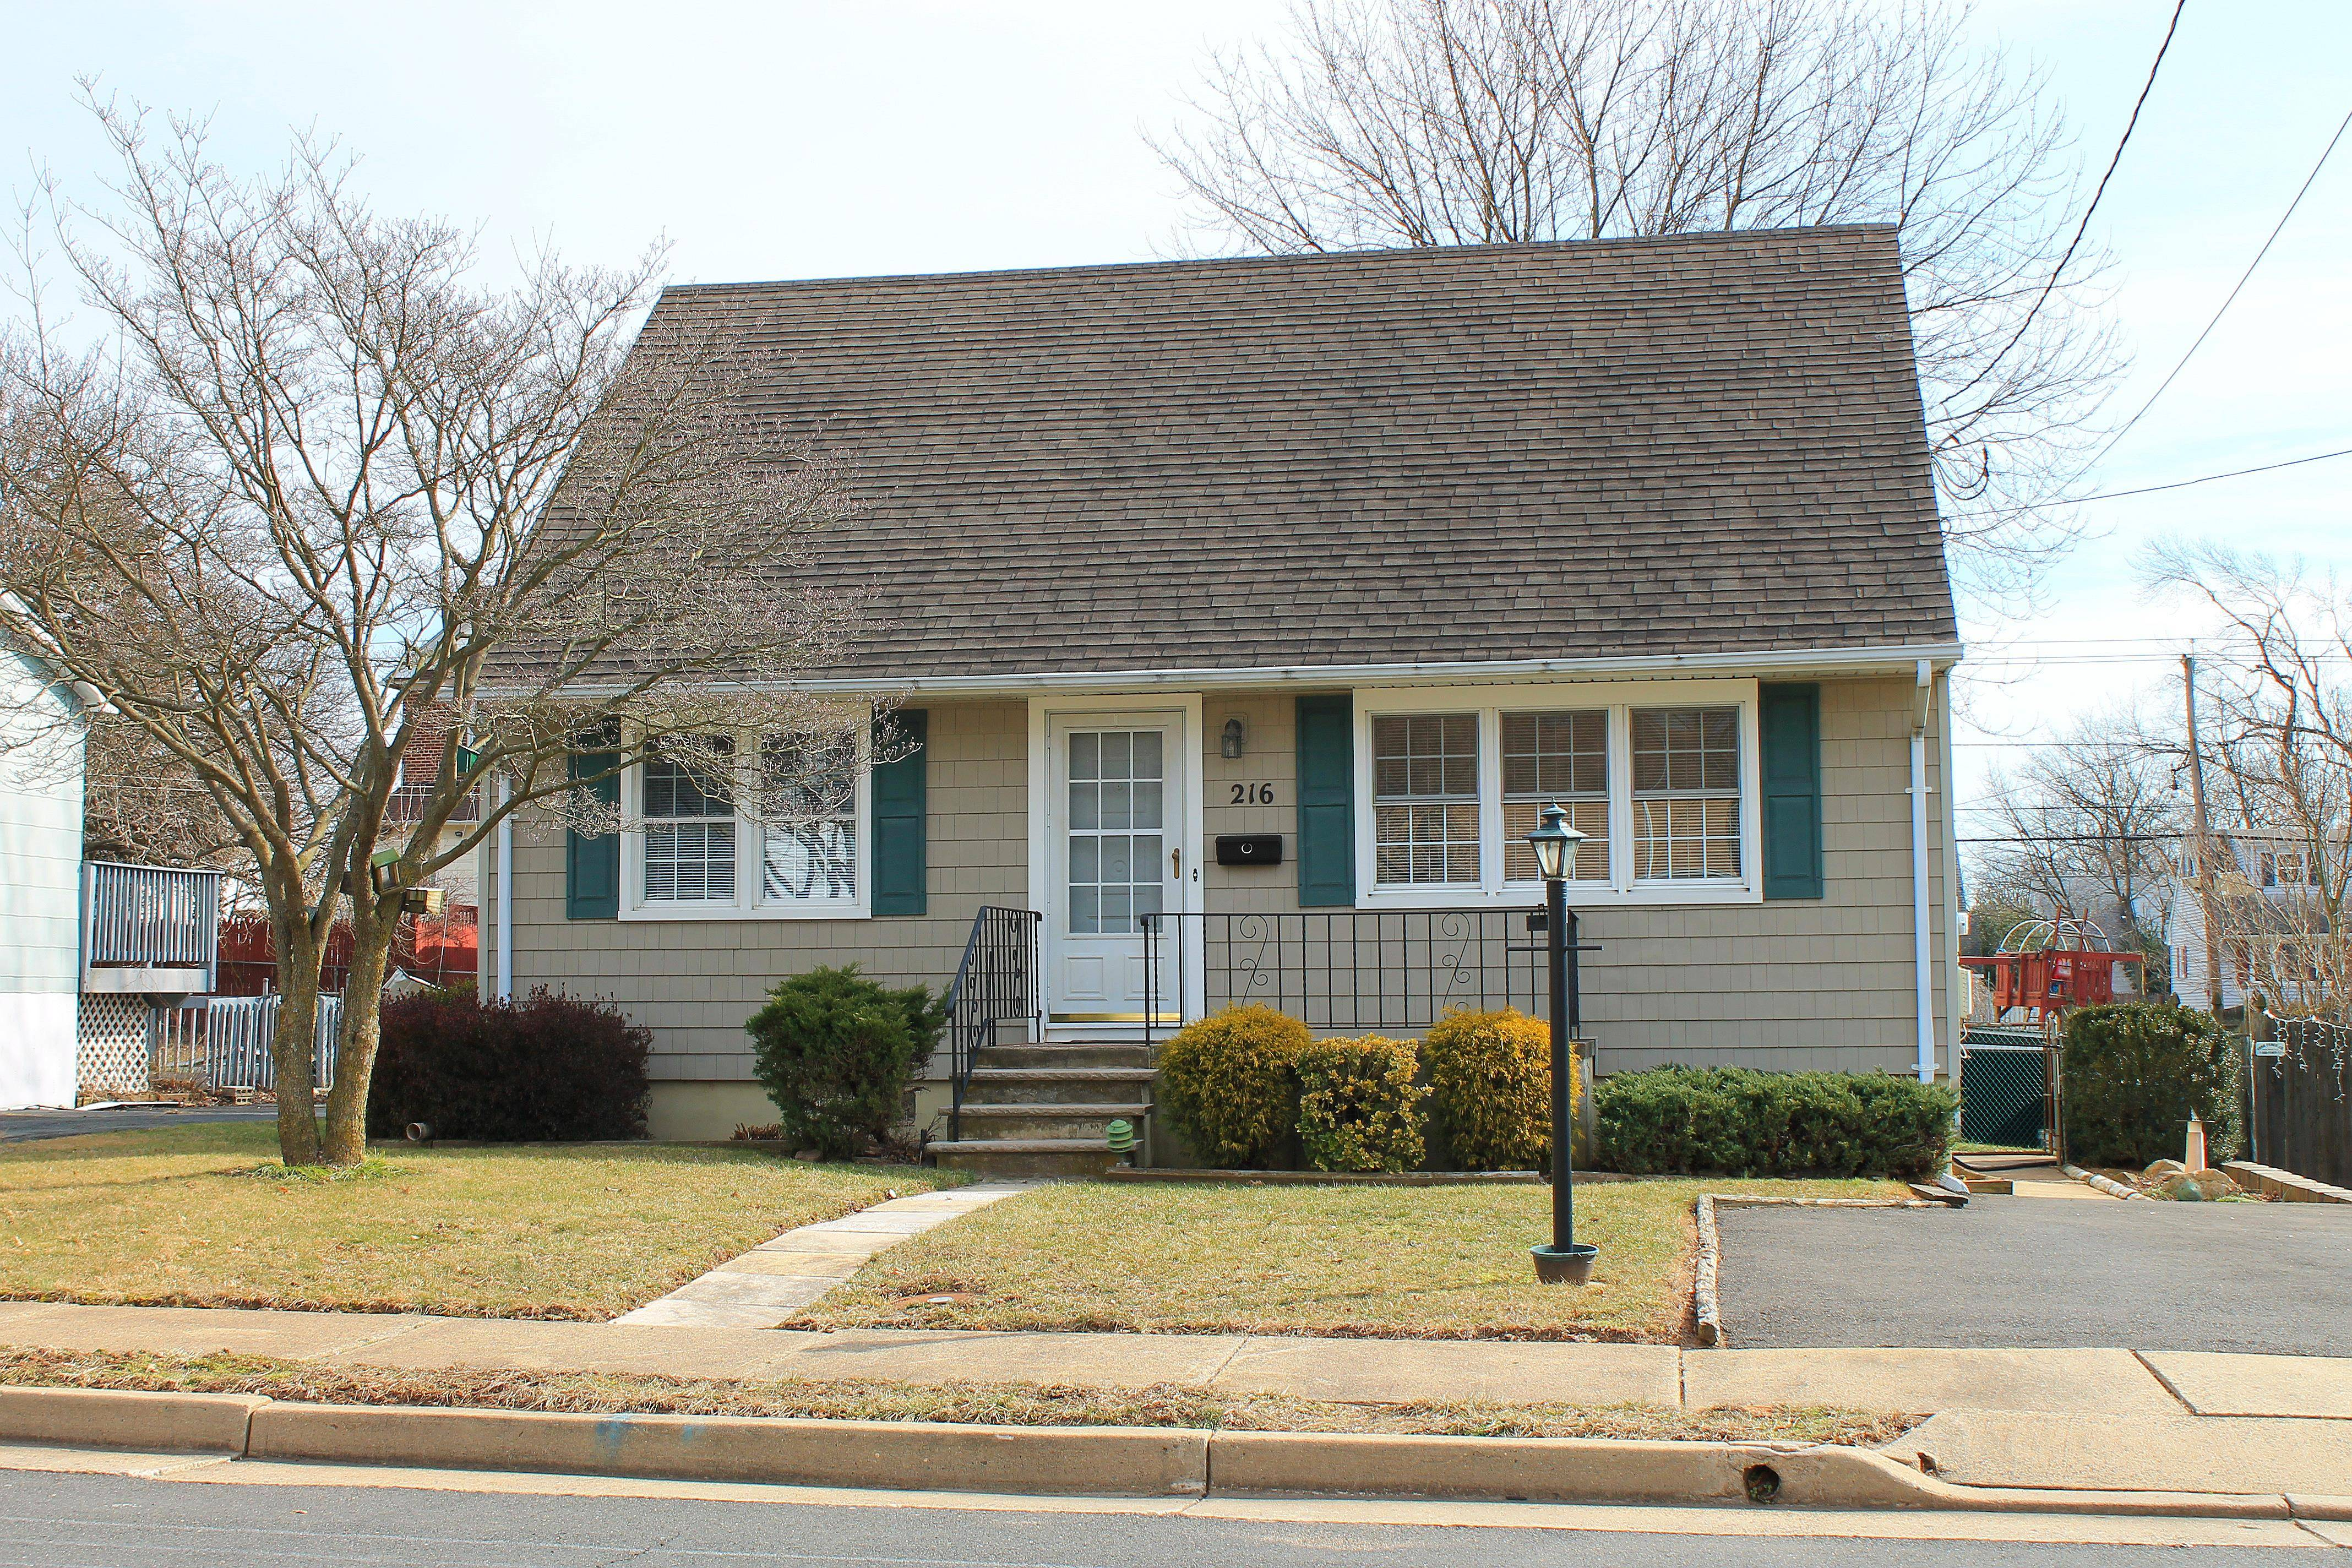 Manville NJ Somerset County Single Family 4 Bedroom 2 Bath Home